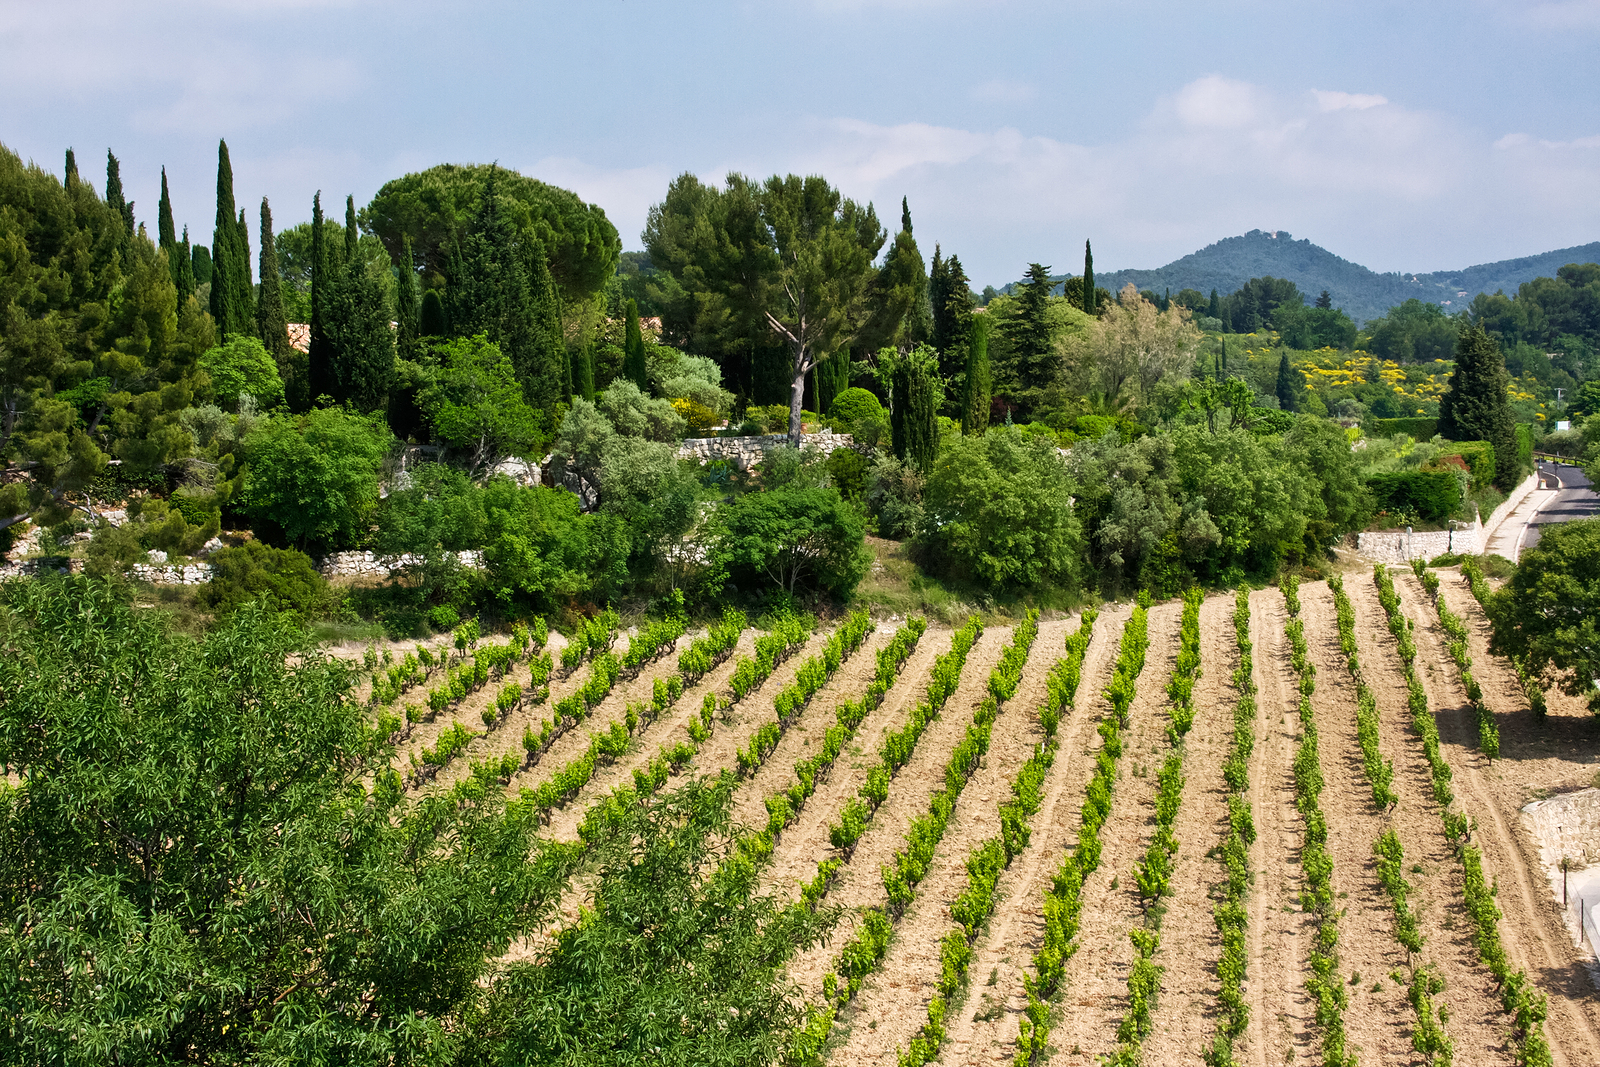 View over the vineyards forests and hills of the Provencal countryside